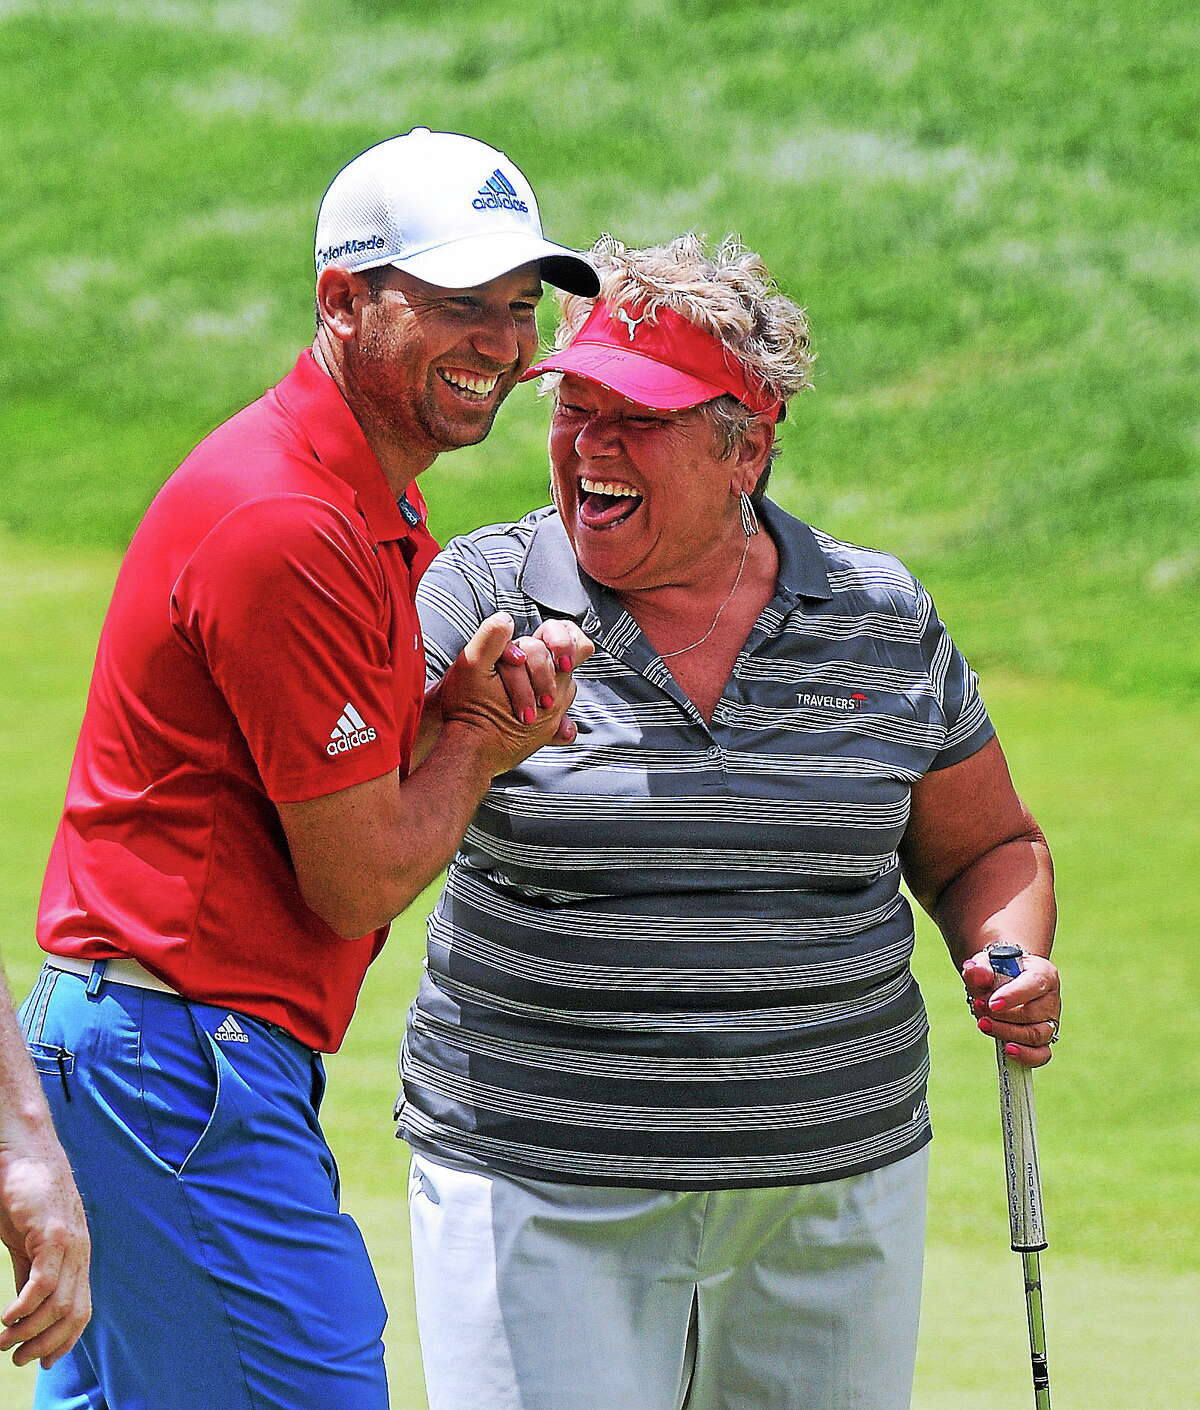 Sergio Garcia celebrates with amateur Barbara Pinkham after she sunk a 60-foot putt on the 18th hole during the Travelers Celebrity Pro-Am on Wednesday at TPC River Highlands in Cromwell.